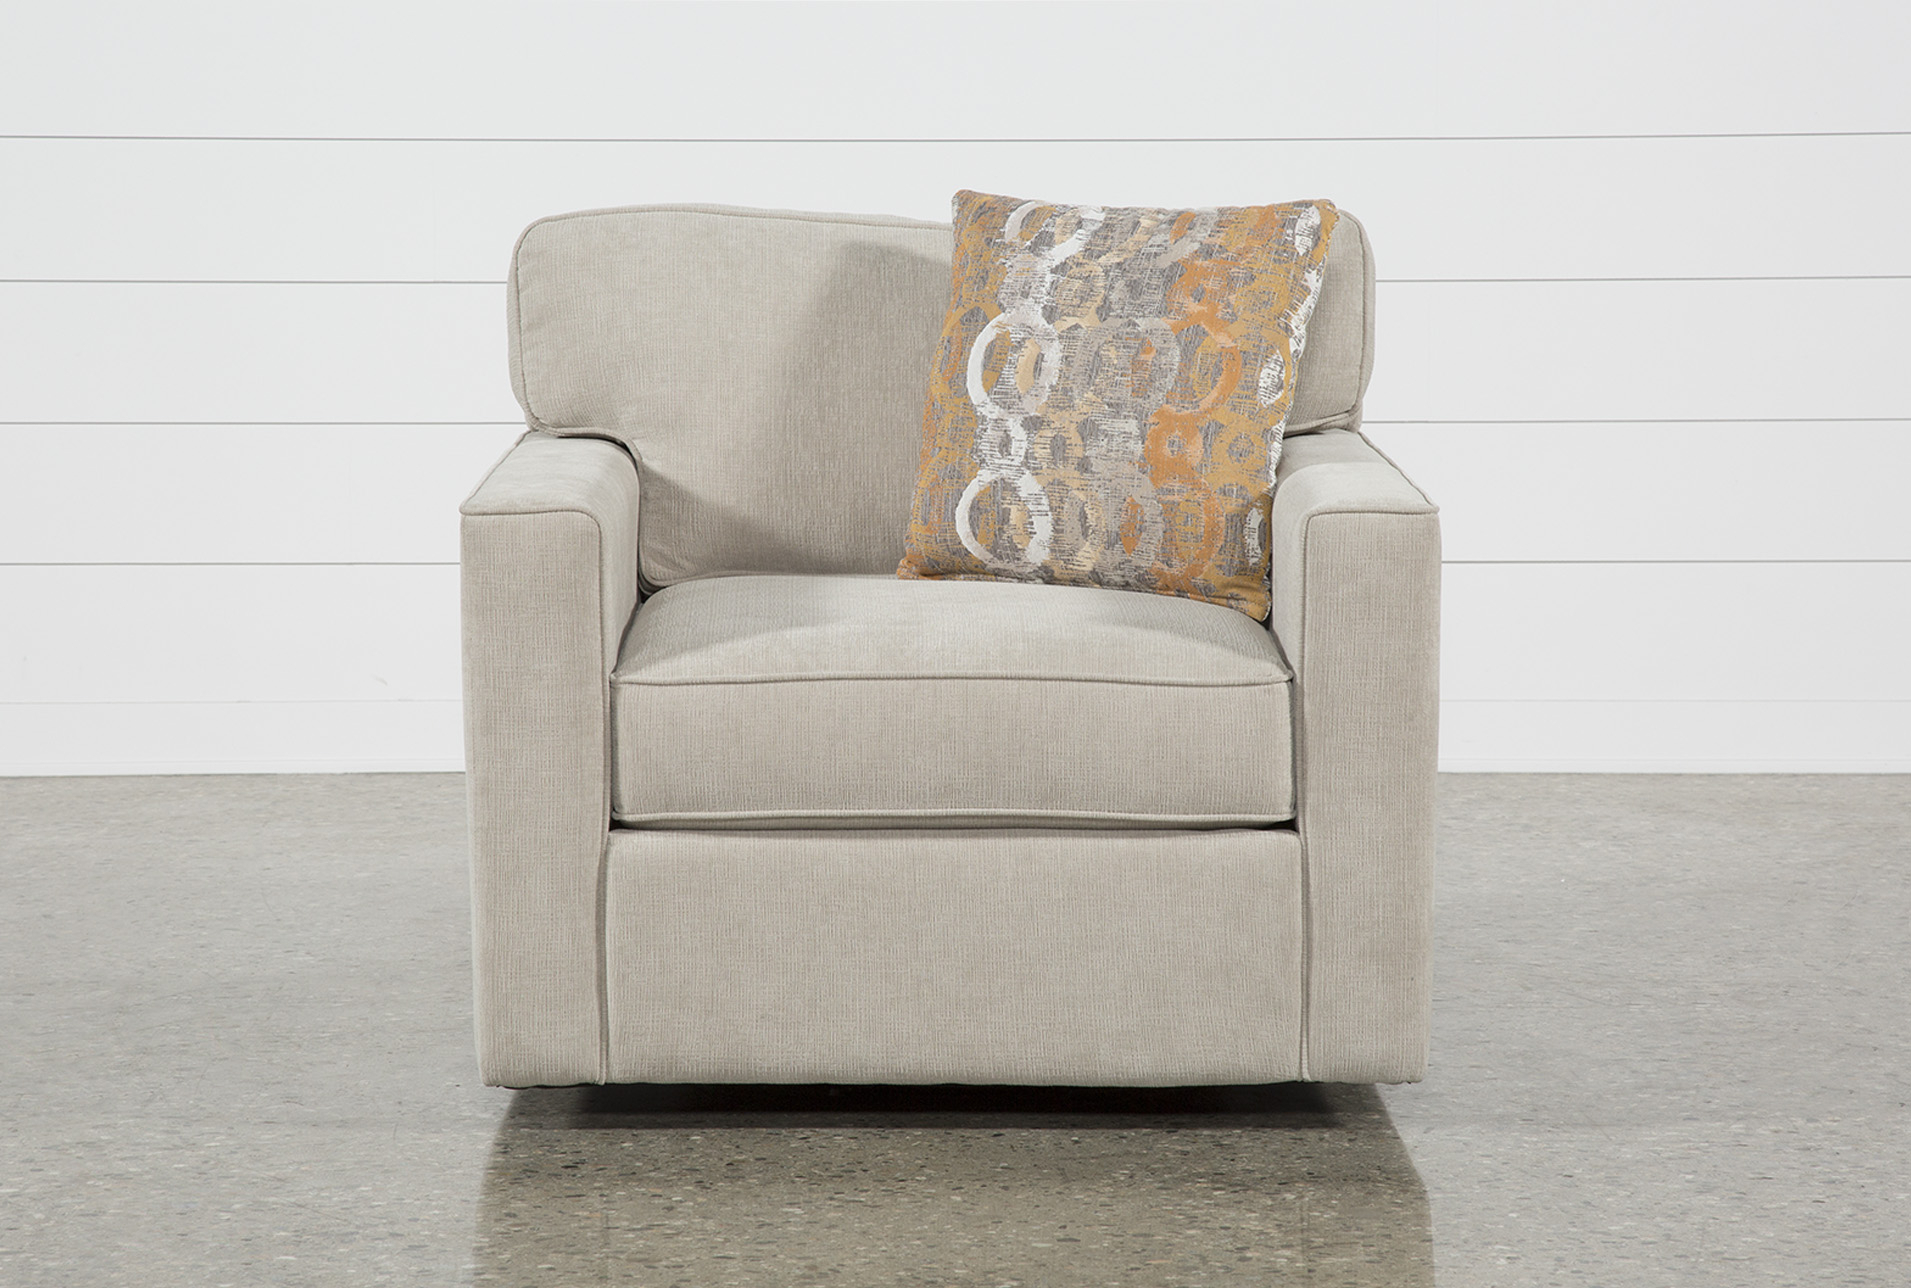 Alder Grande Ii Swivel Chair | Swivel Chair And Products For Alder Grande Ii Sofa Chairs (Image 4 of 20)